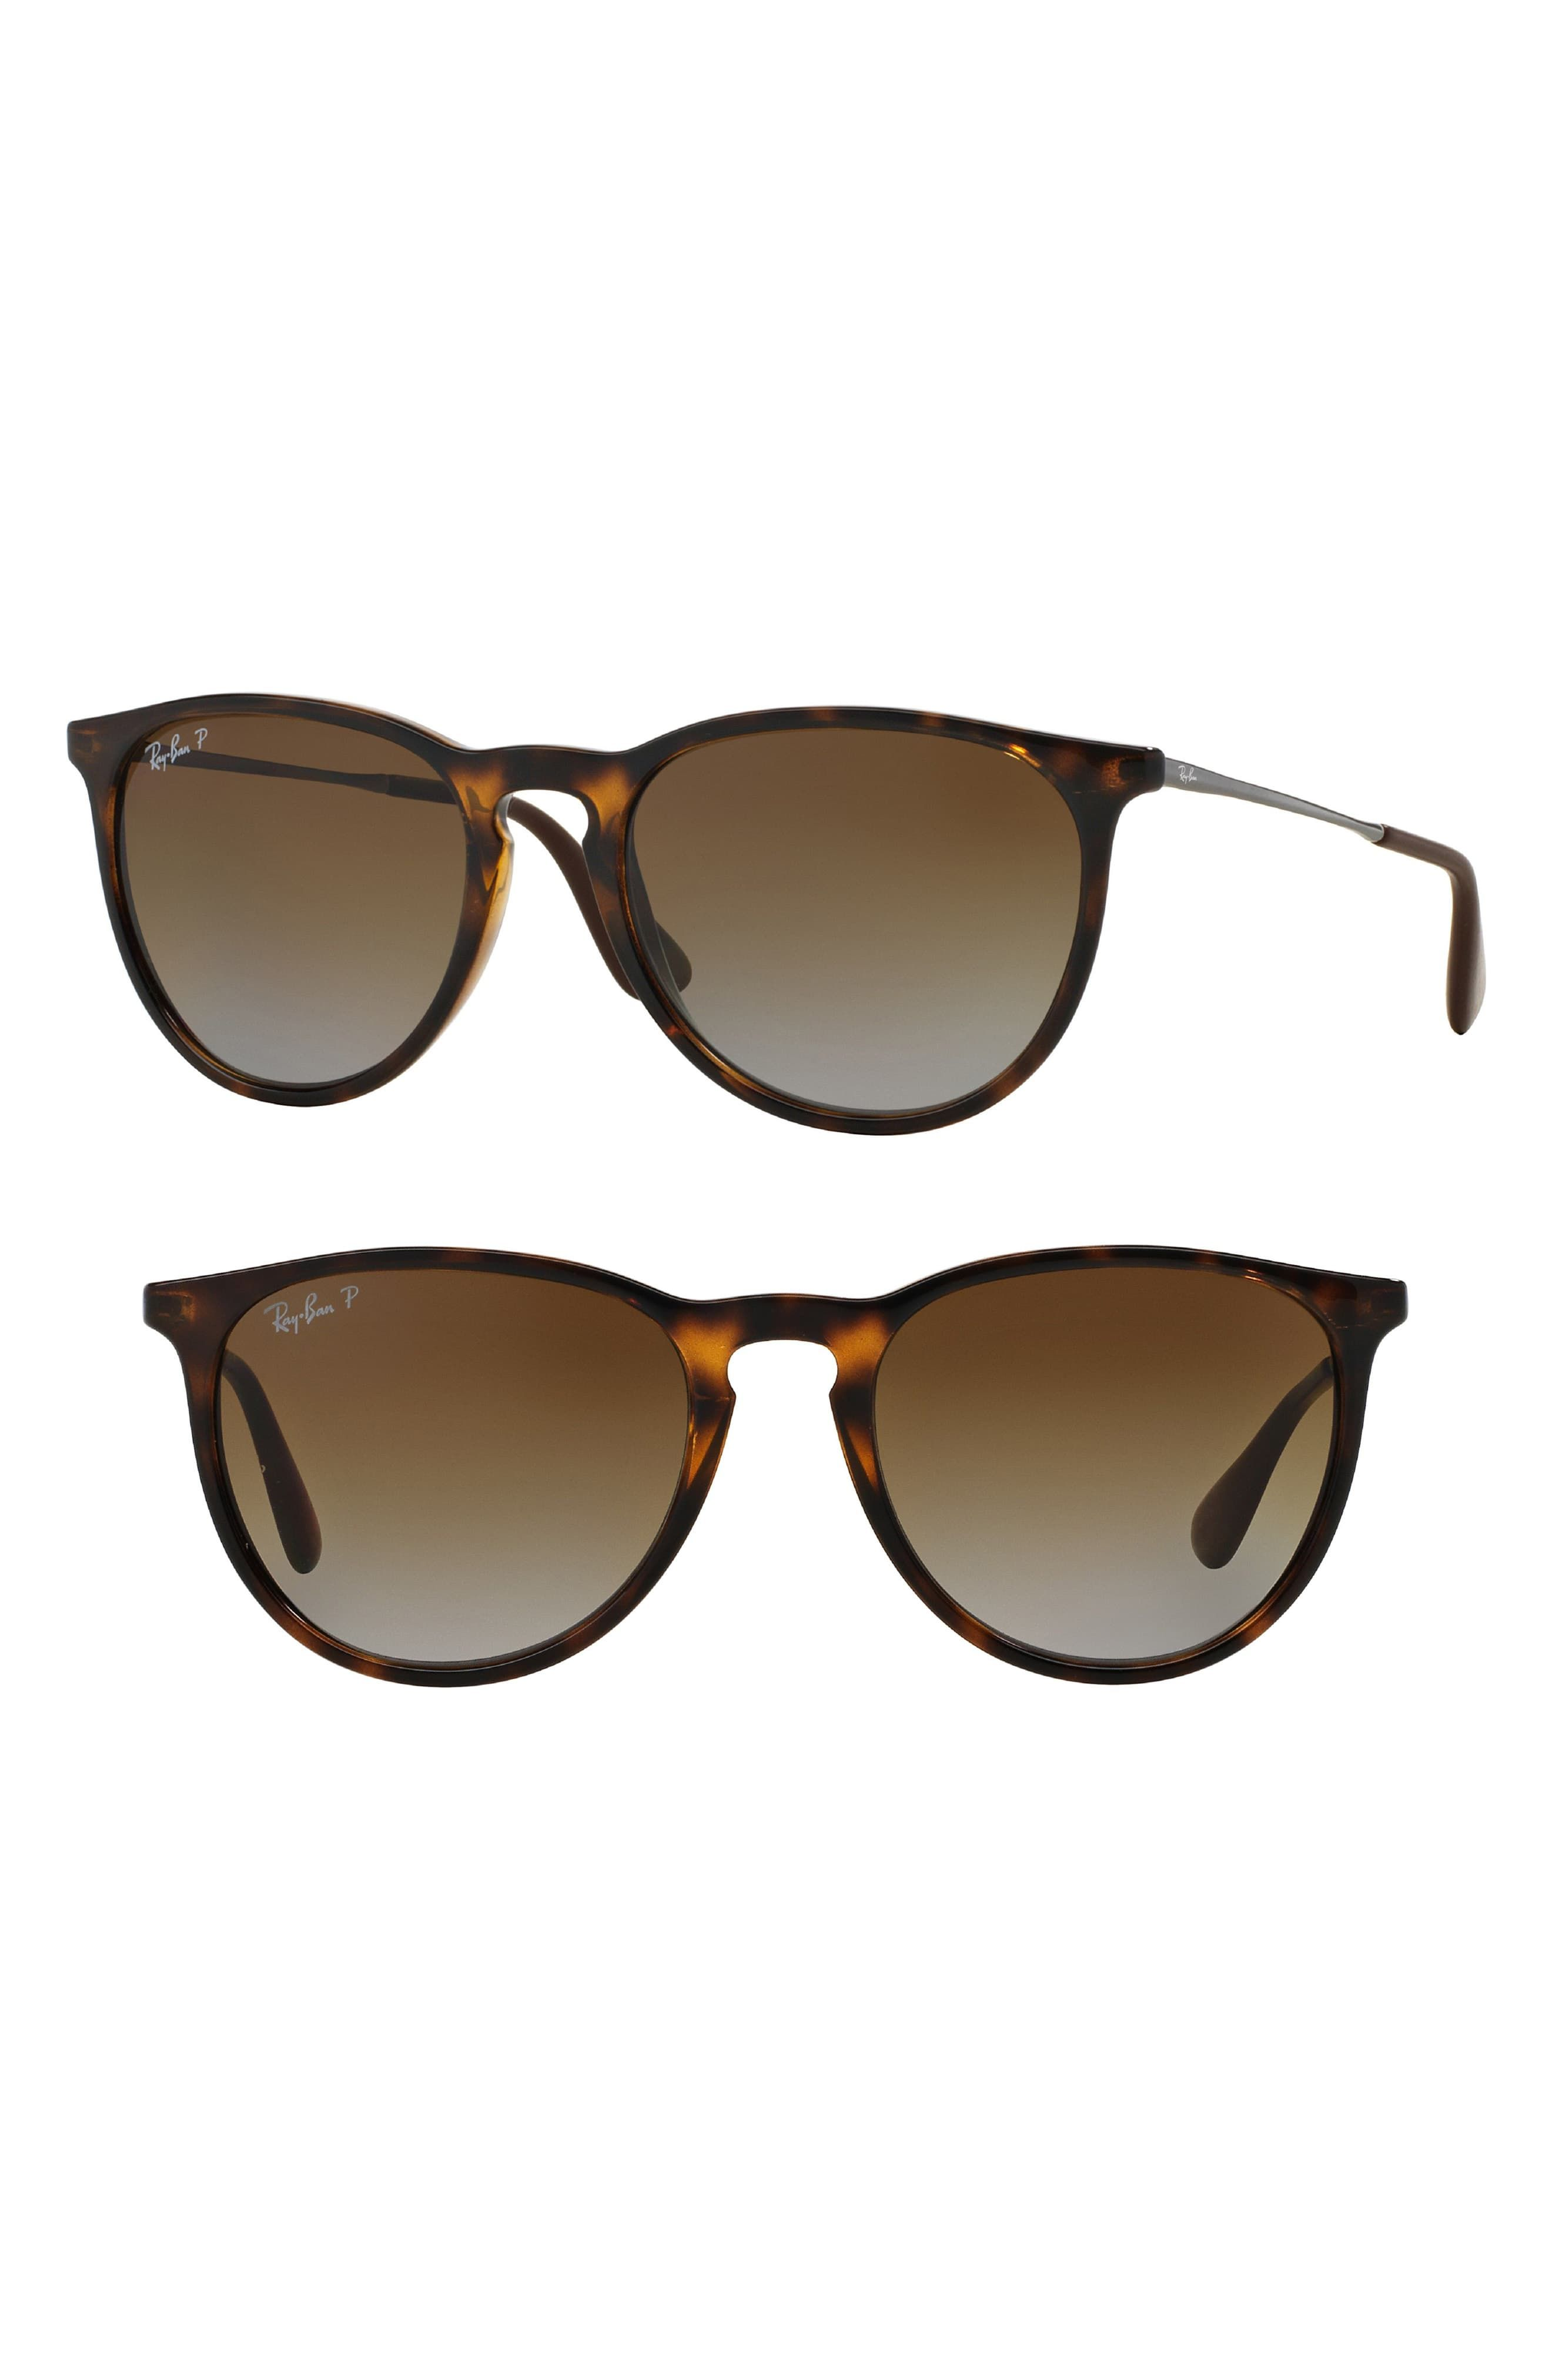 d48a835b0 Ray-Ban Erika Classic 54mm Sunglasses in 2019 | Products | Ray ban ...